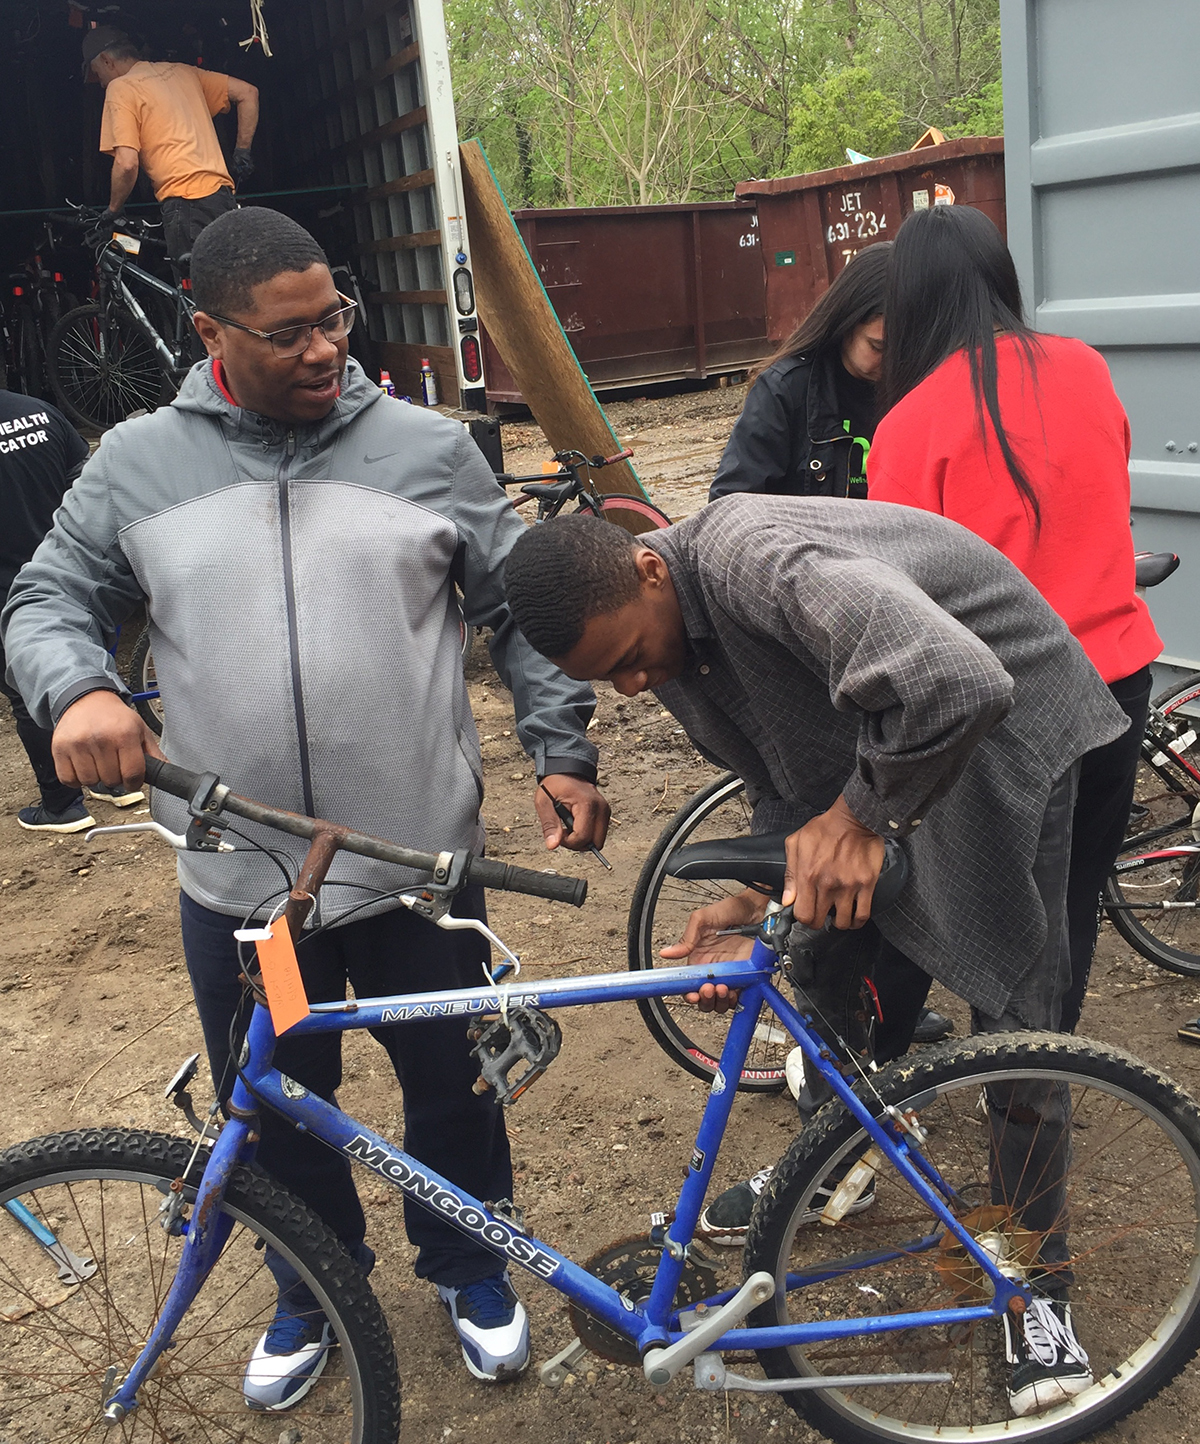 Student volunteers working together to load the bicycles.